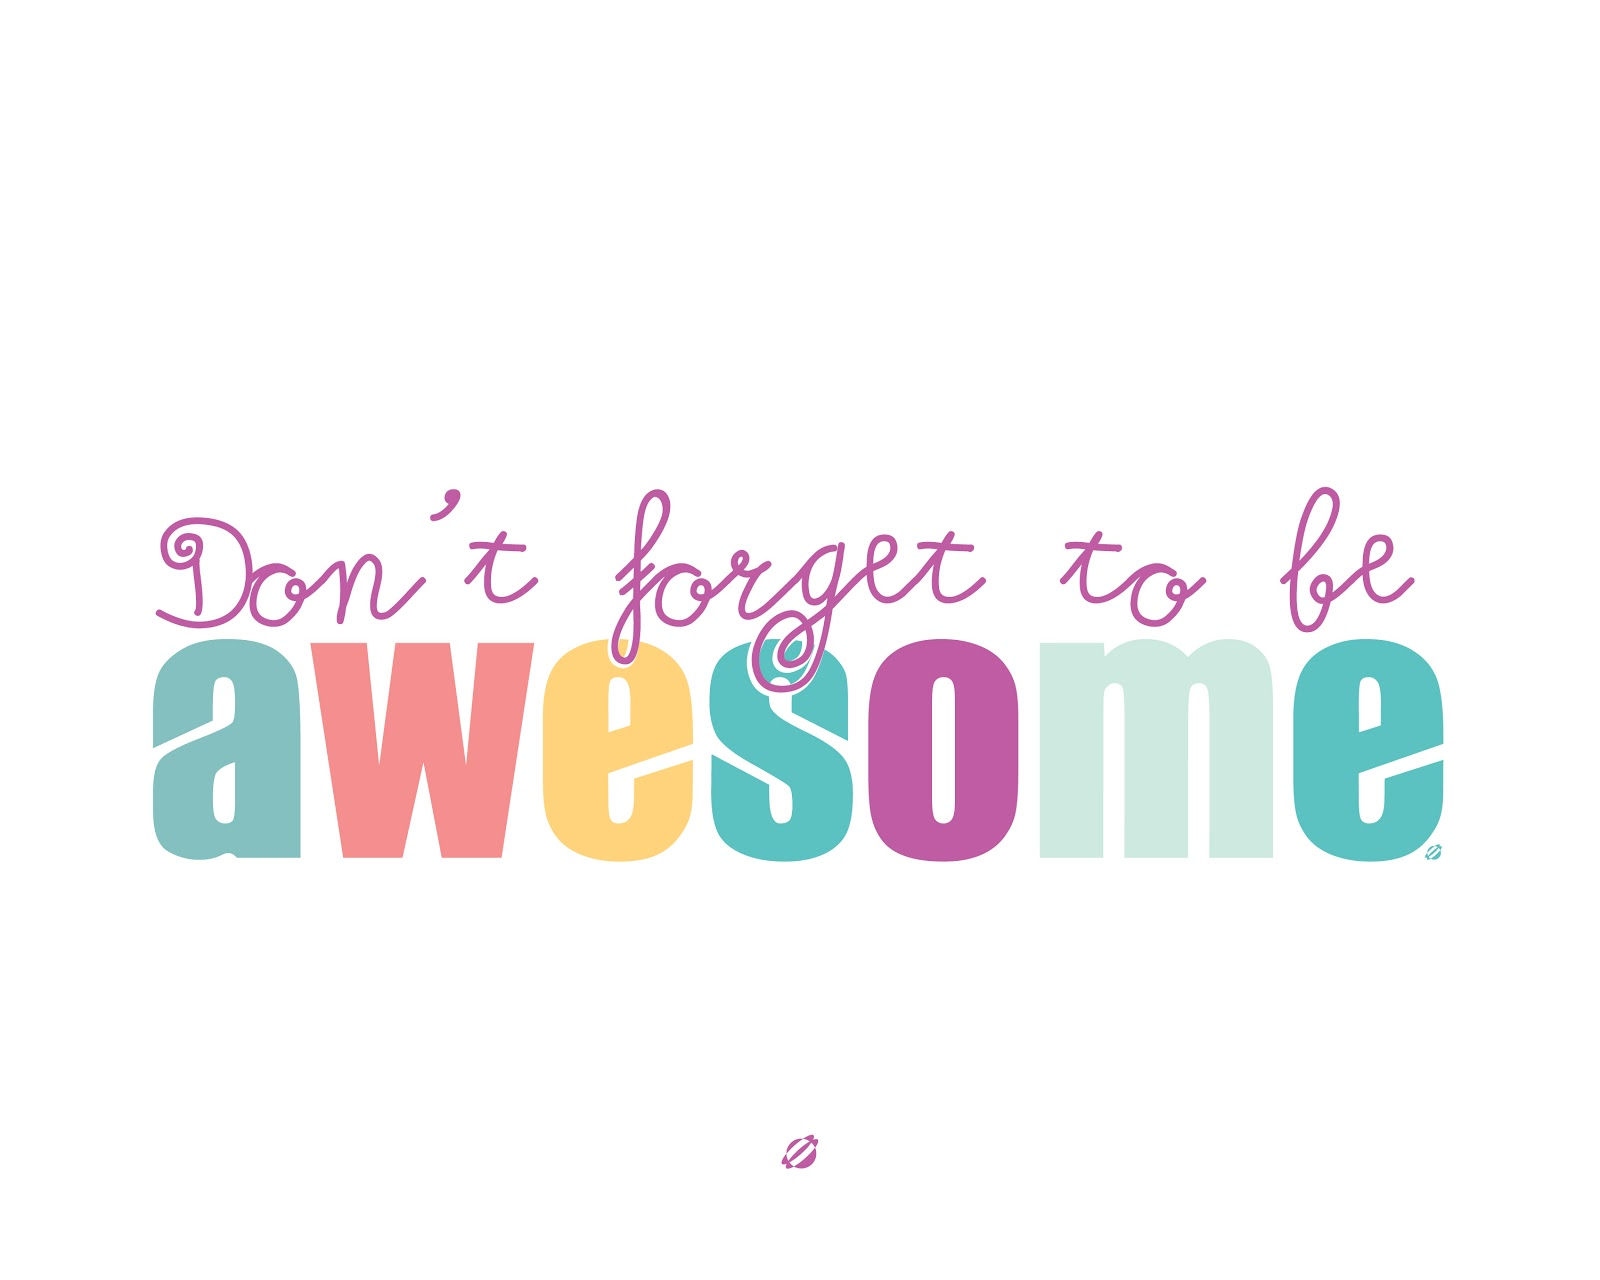 LostBumblebee ©2014 Be AWESOME Free Printable Personal Use Only